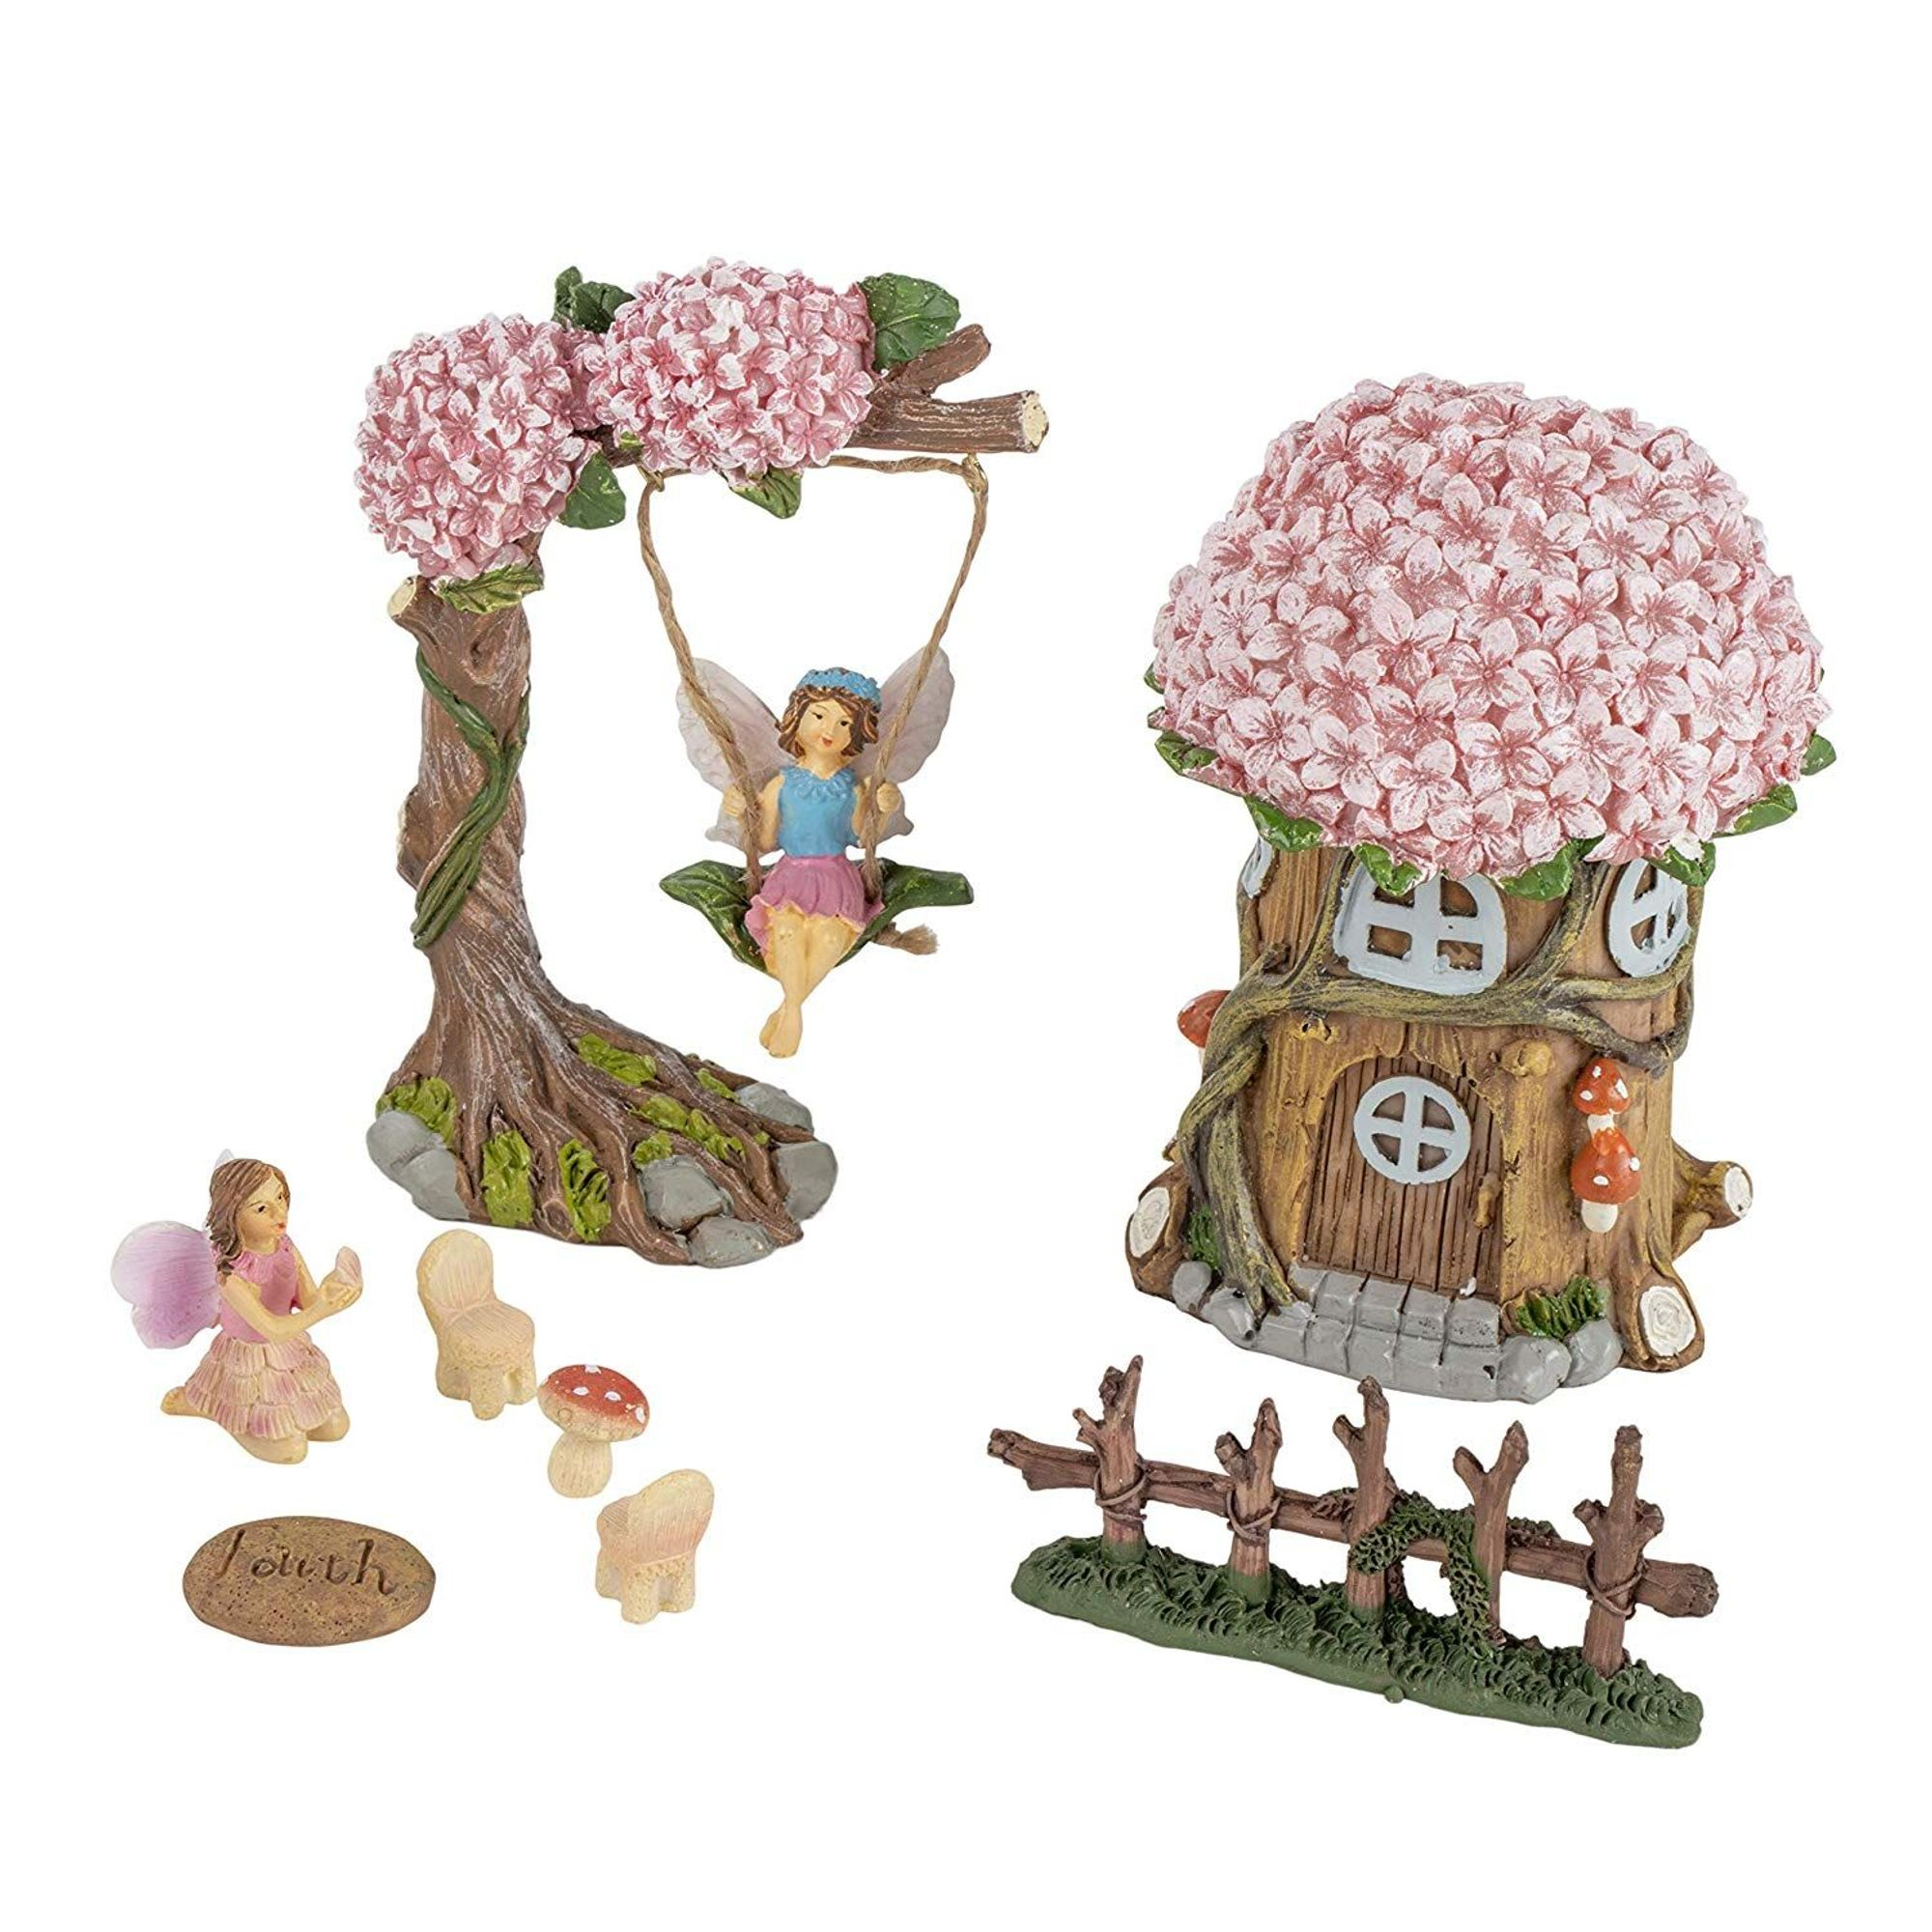 Walmart Wedding Gift Ideas: 6-Piece Unicorn Fairy Garden